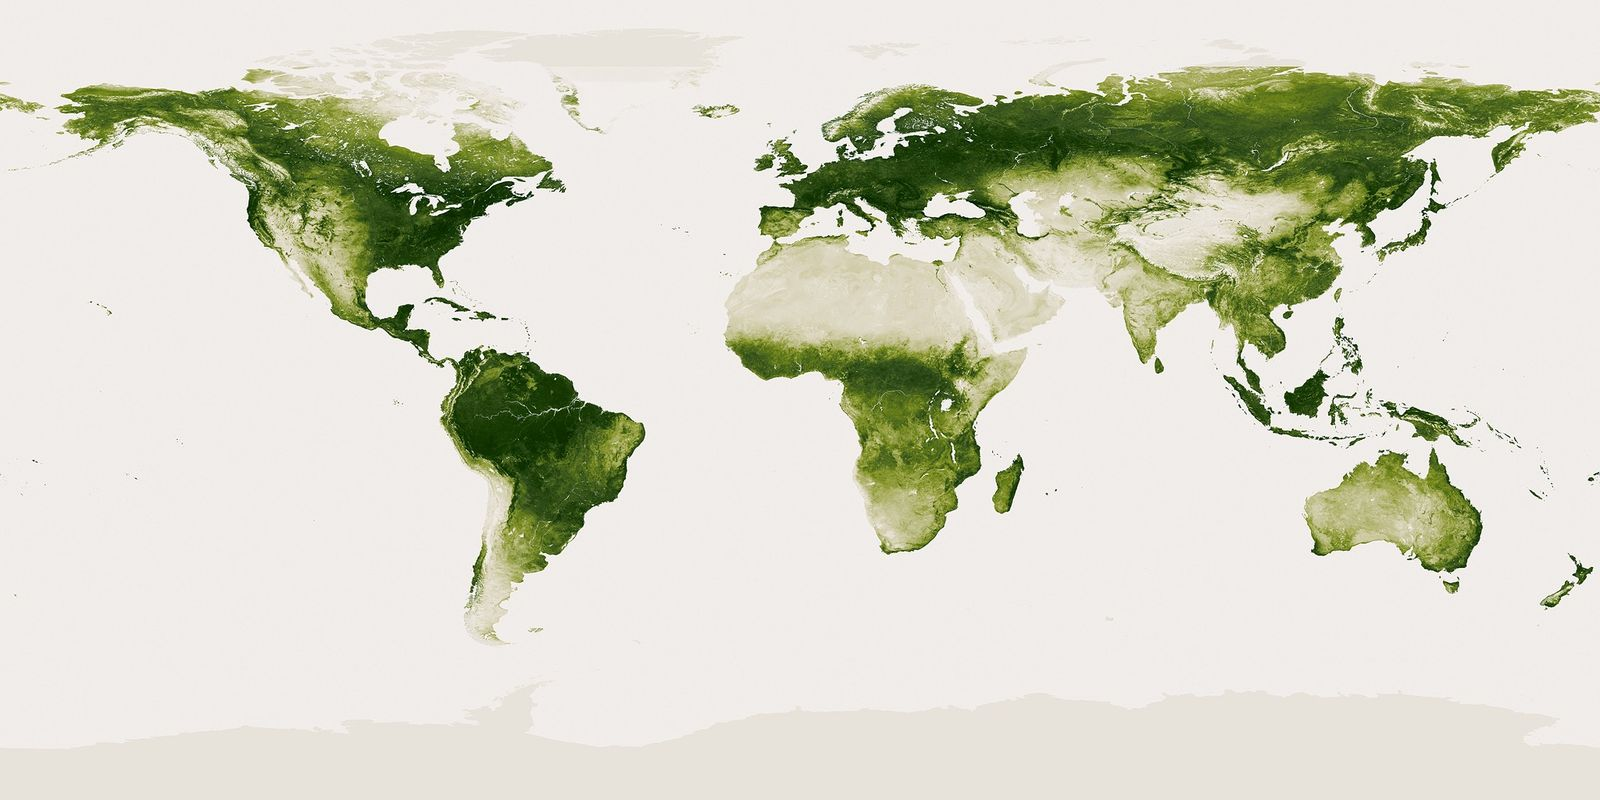 Pictures: Earth's Green Places Mapped in High Resolution